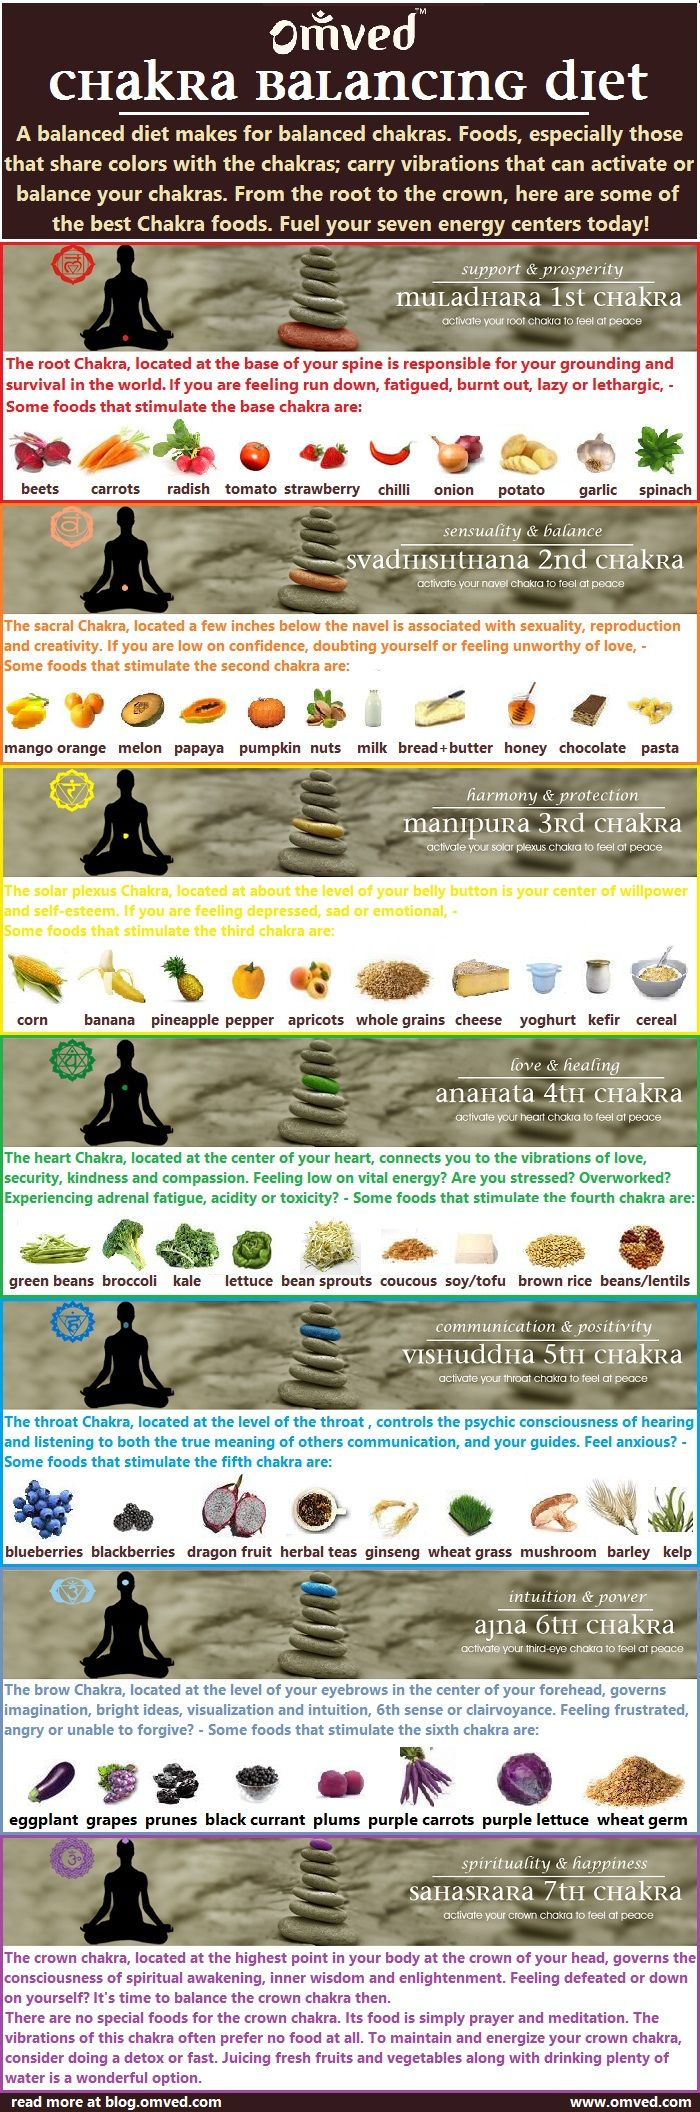 Chakras are energy centers located throughout your body that influence and reflect your physical health as well as your mental, emotional and spiritual wellbeing. Balanced diet can result in balanced chakras. Here is a chart of the best #chakra #foods. Read more at blog. omved.com